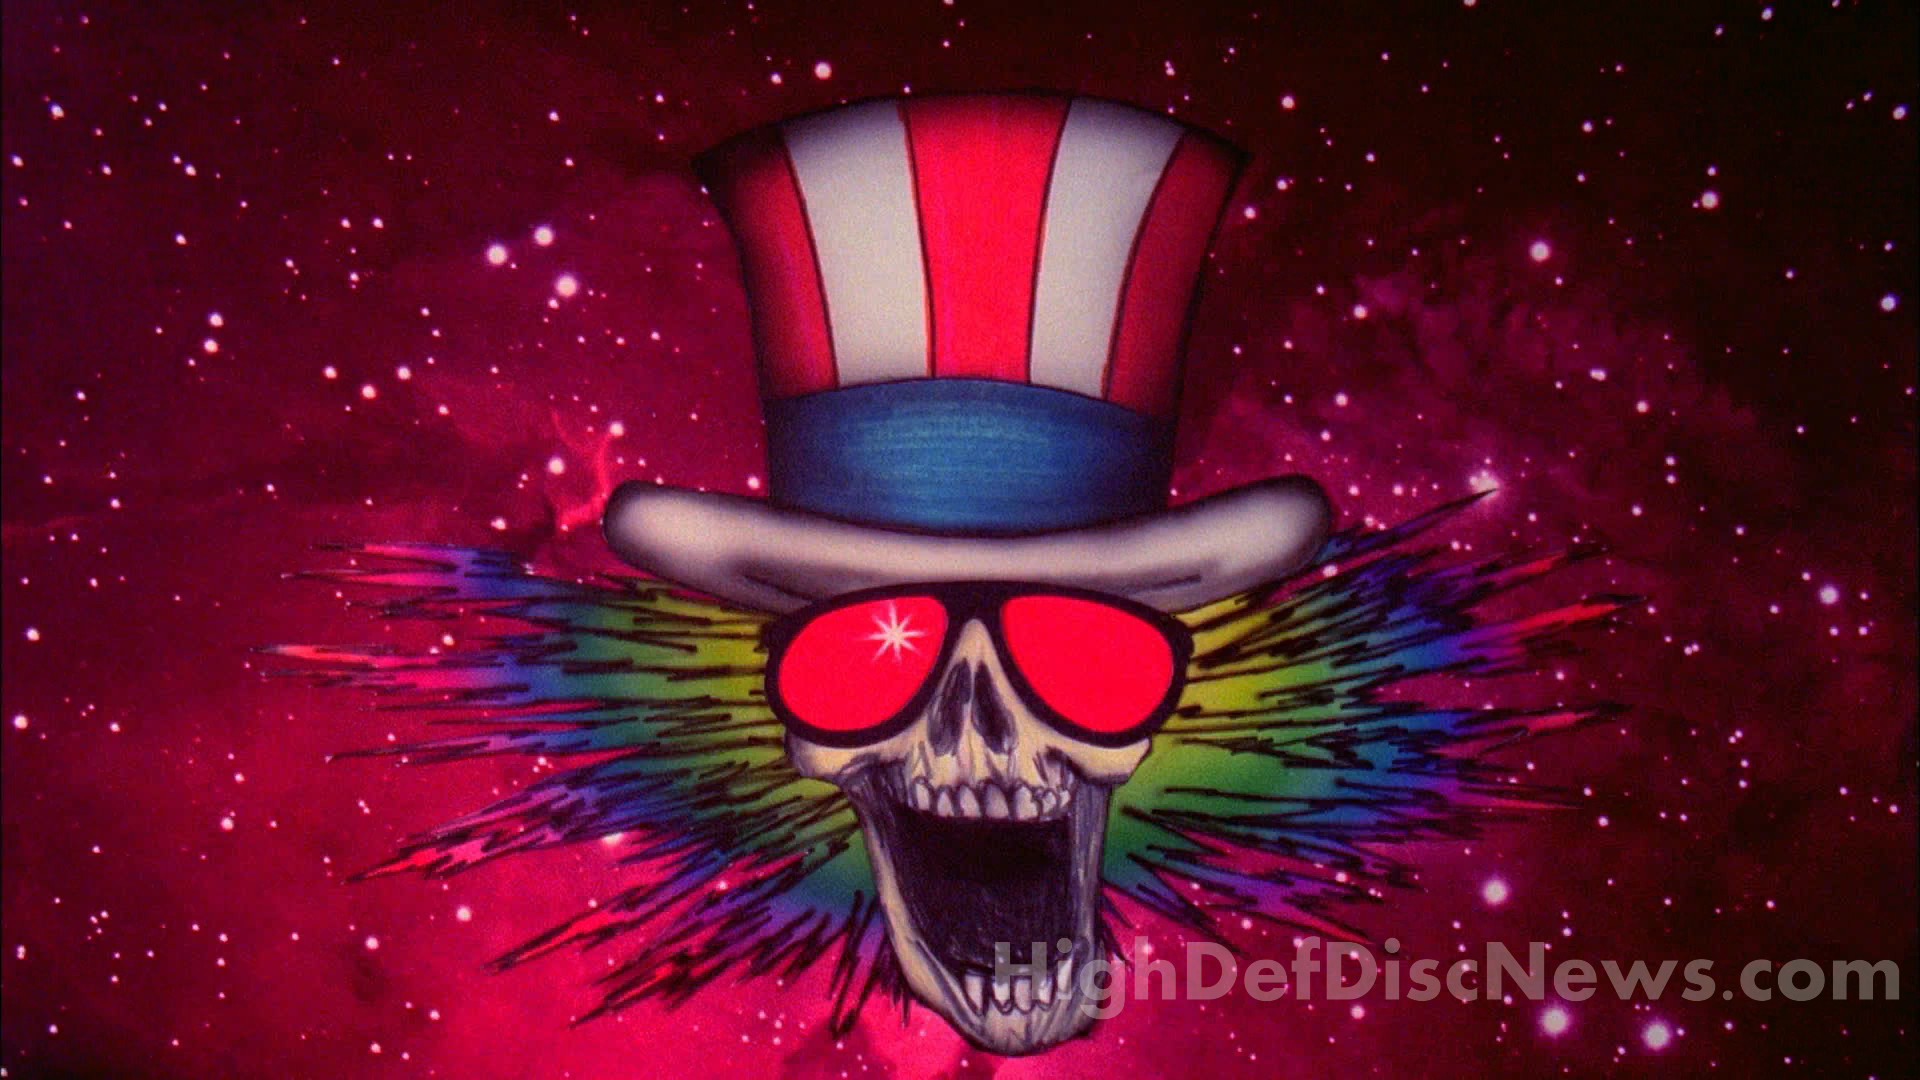 GRATEFUL DEAD WALLPAPERS FREE Wallpapers & Background images .